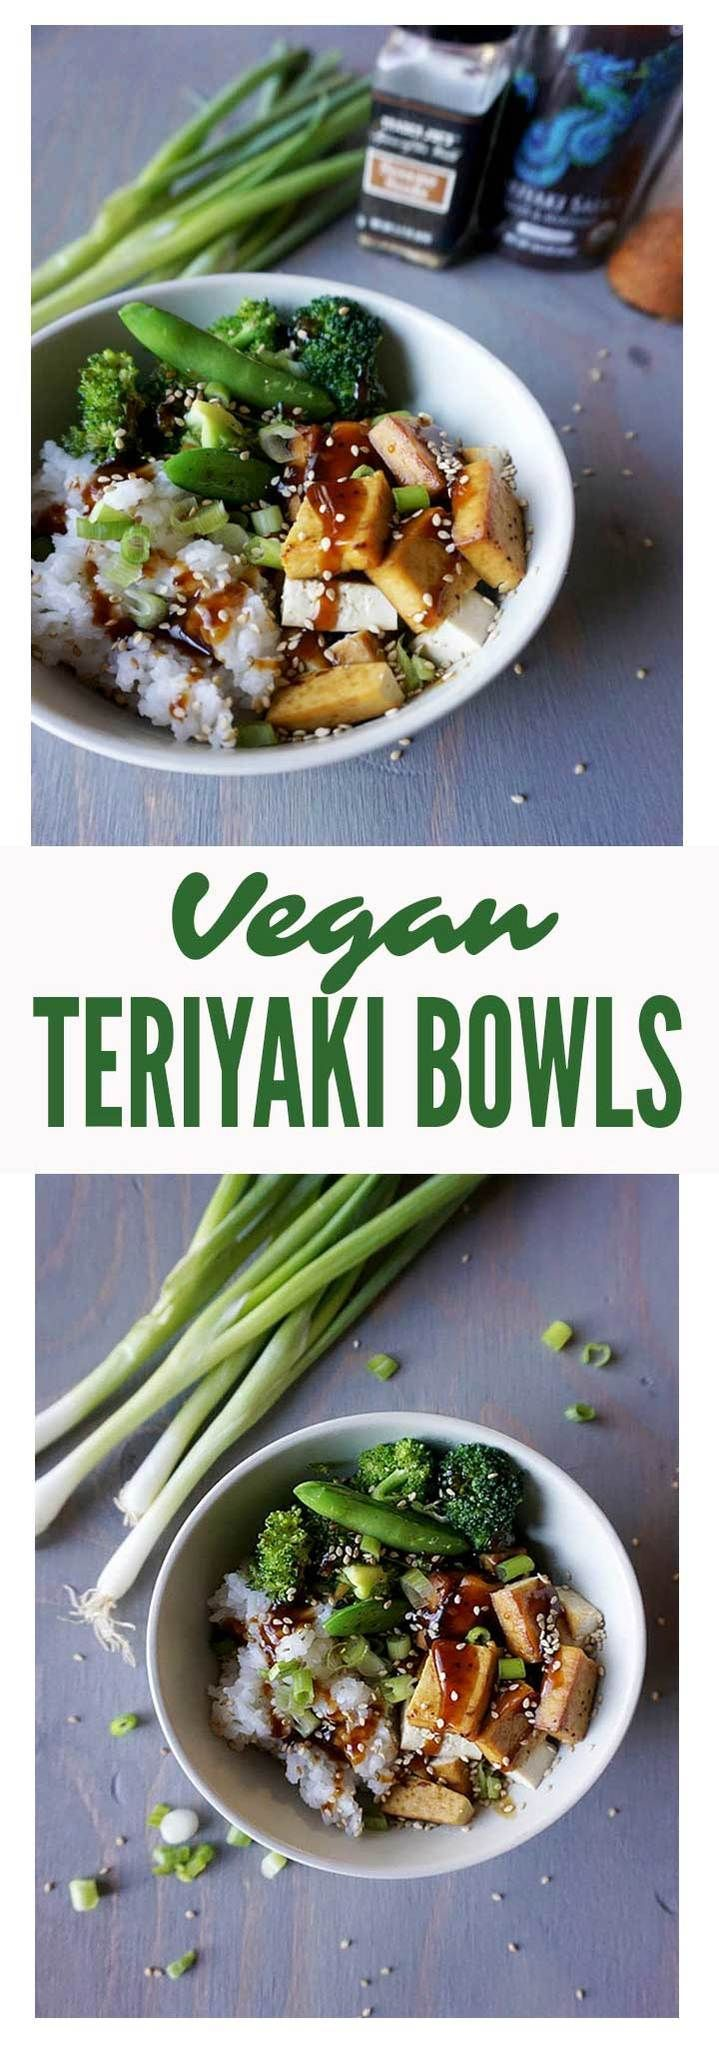 These Vegan Teriyaki Bowls will impress even the meat-eaters for dinner.